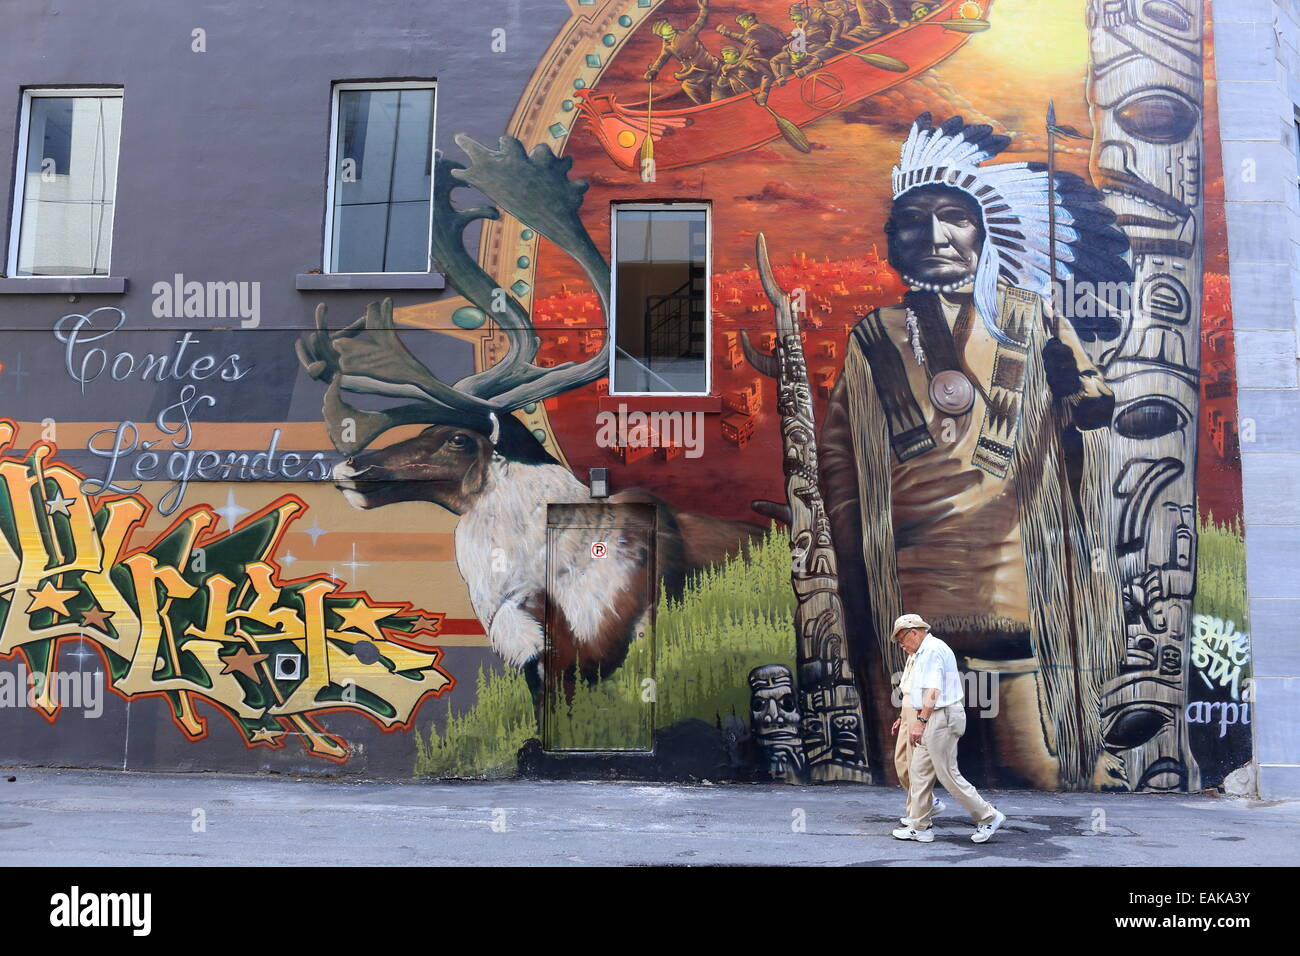 Mural with a native american motif montral quebec province mural with a native american motif montral quebec province canada amipublicfo Choice Image